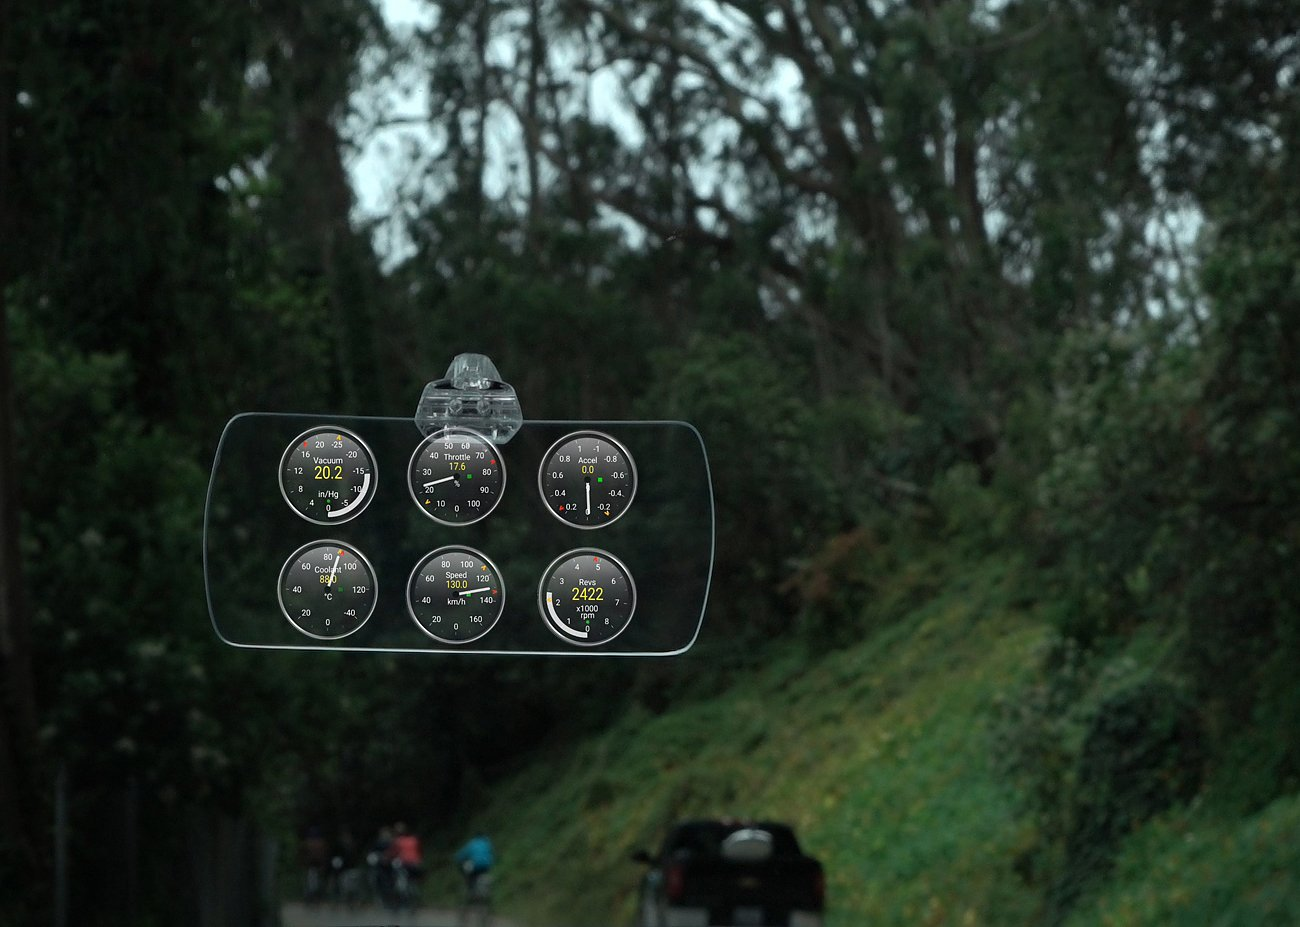 Hudly – Full Color Heads-Up Display for All Cars & Phone Apps